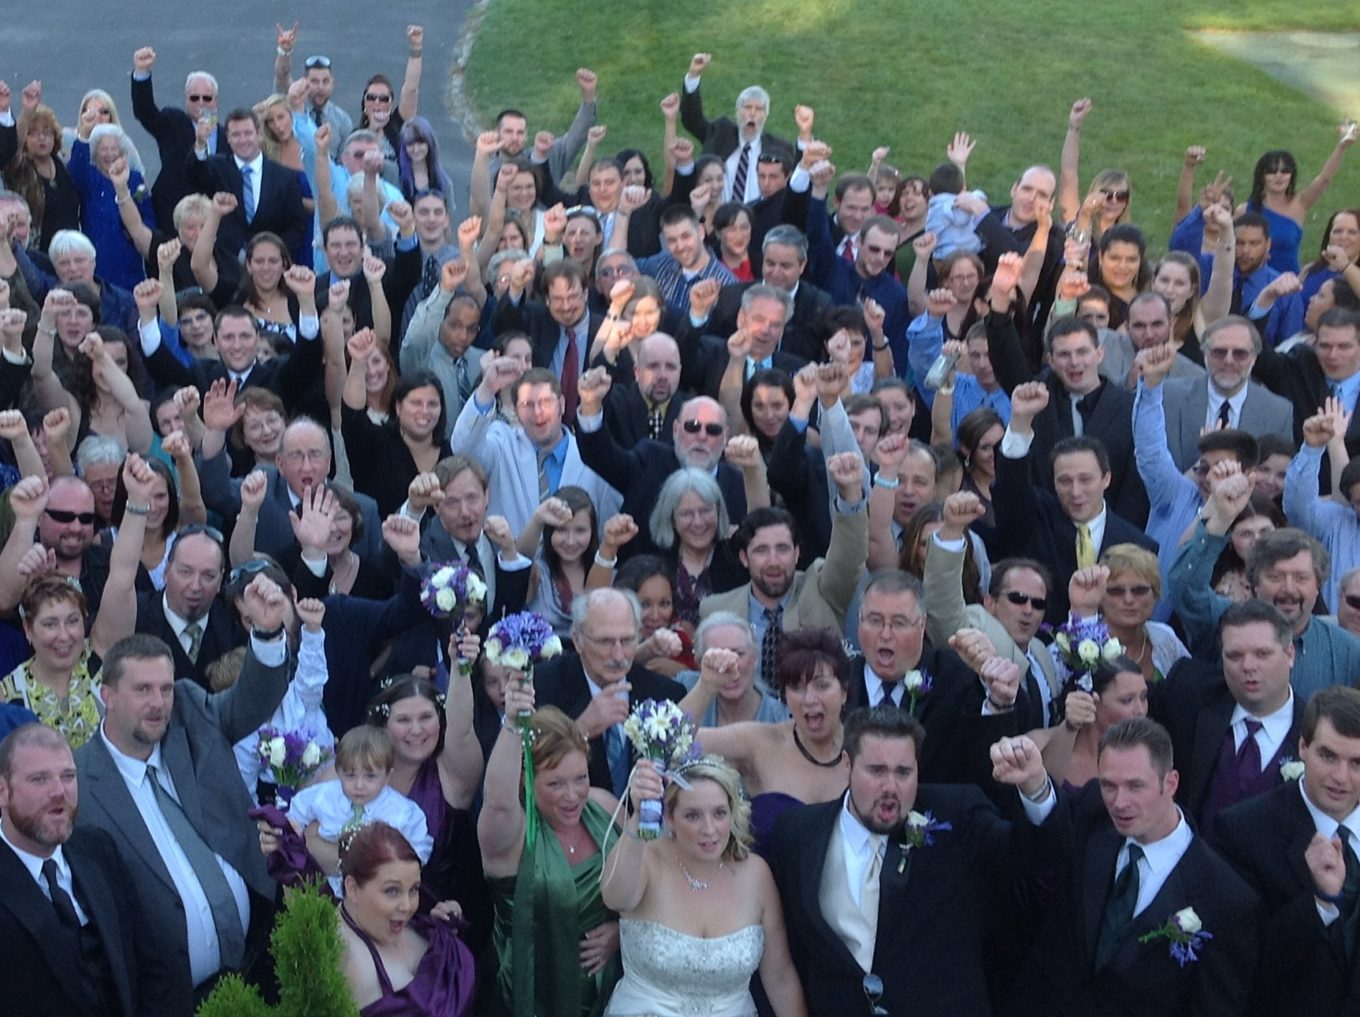 wedding fun with family and friends